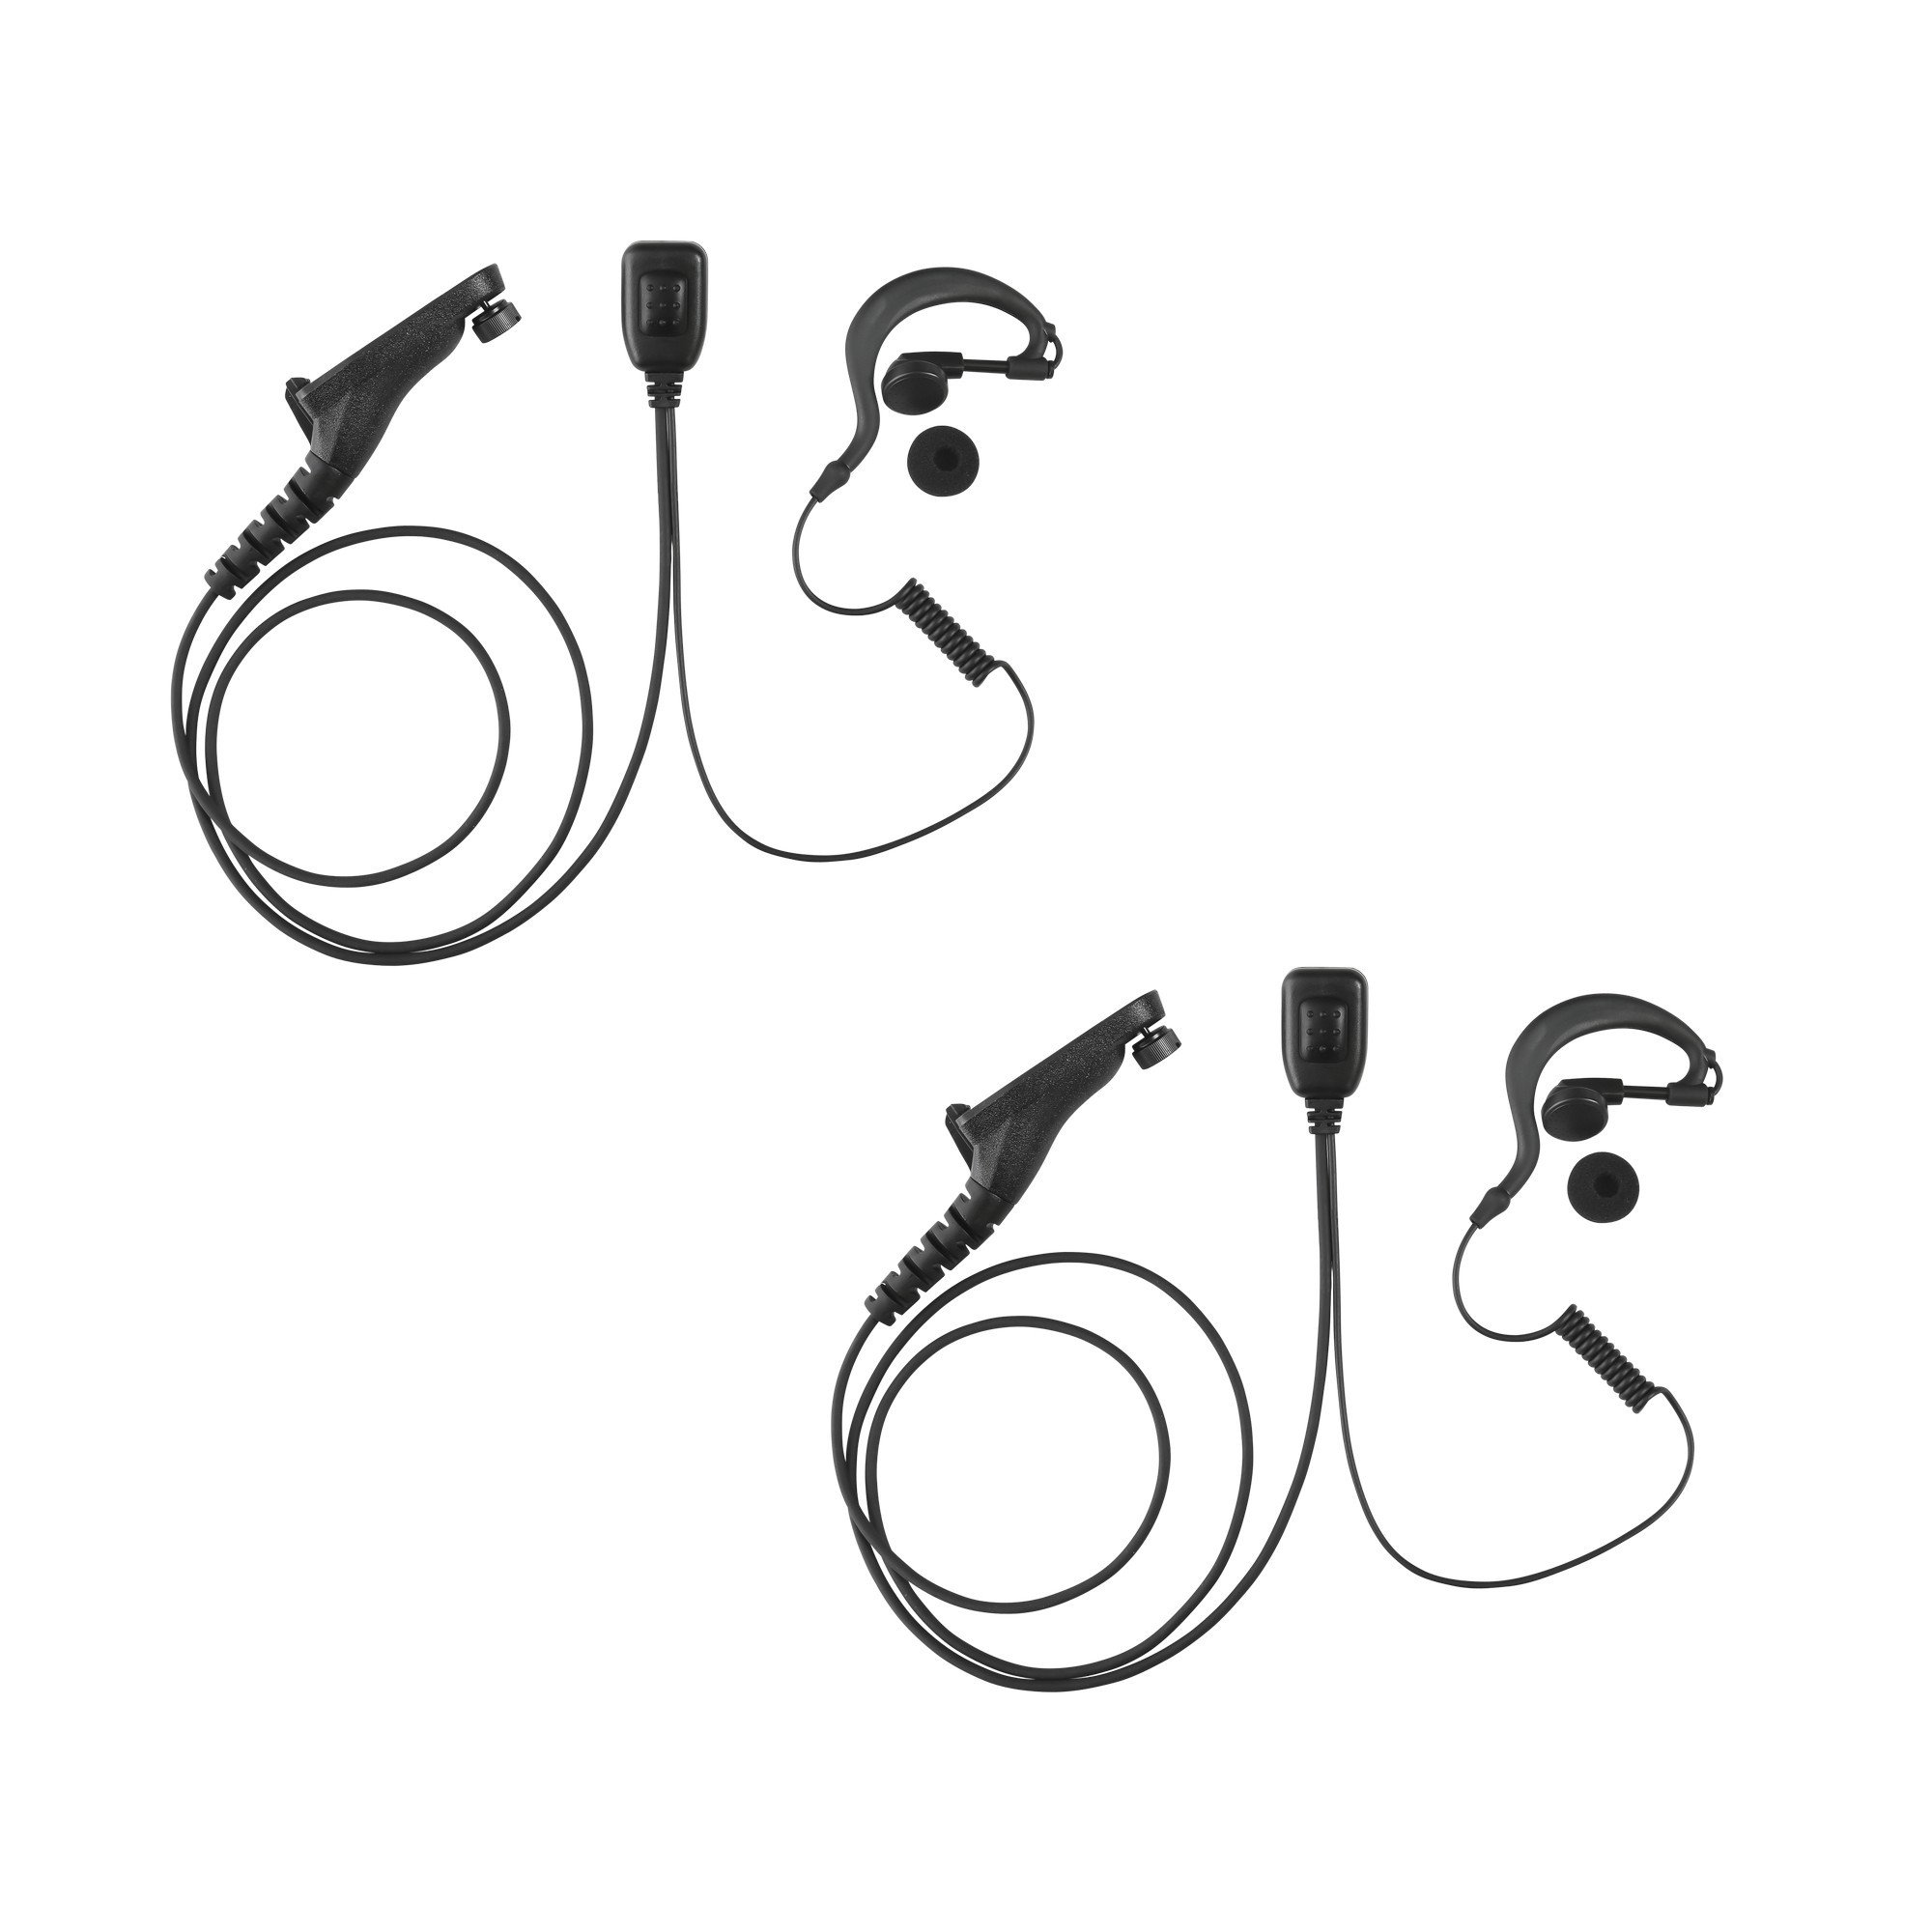 2 Pack Maxtop AEH1003-M9 G-Sharp Earhanger Earphone for Motorola MOTOTRBO  XPR-6550 XPR-7350 XPR-7550 APX-6000